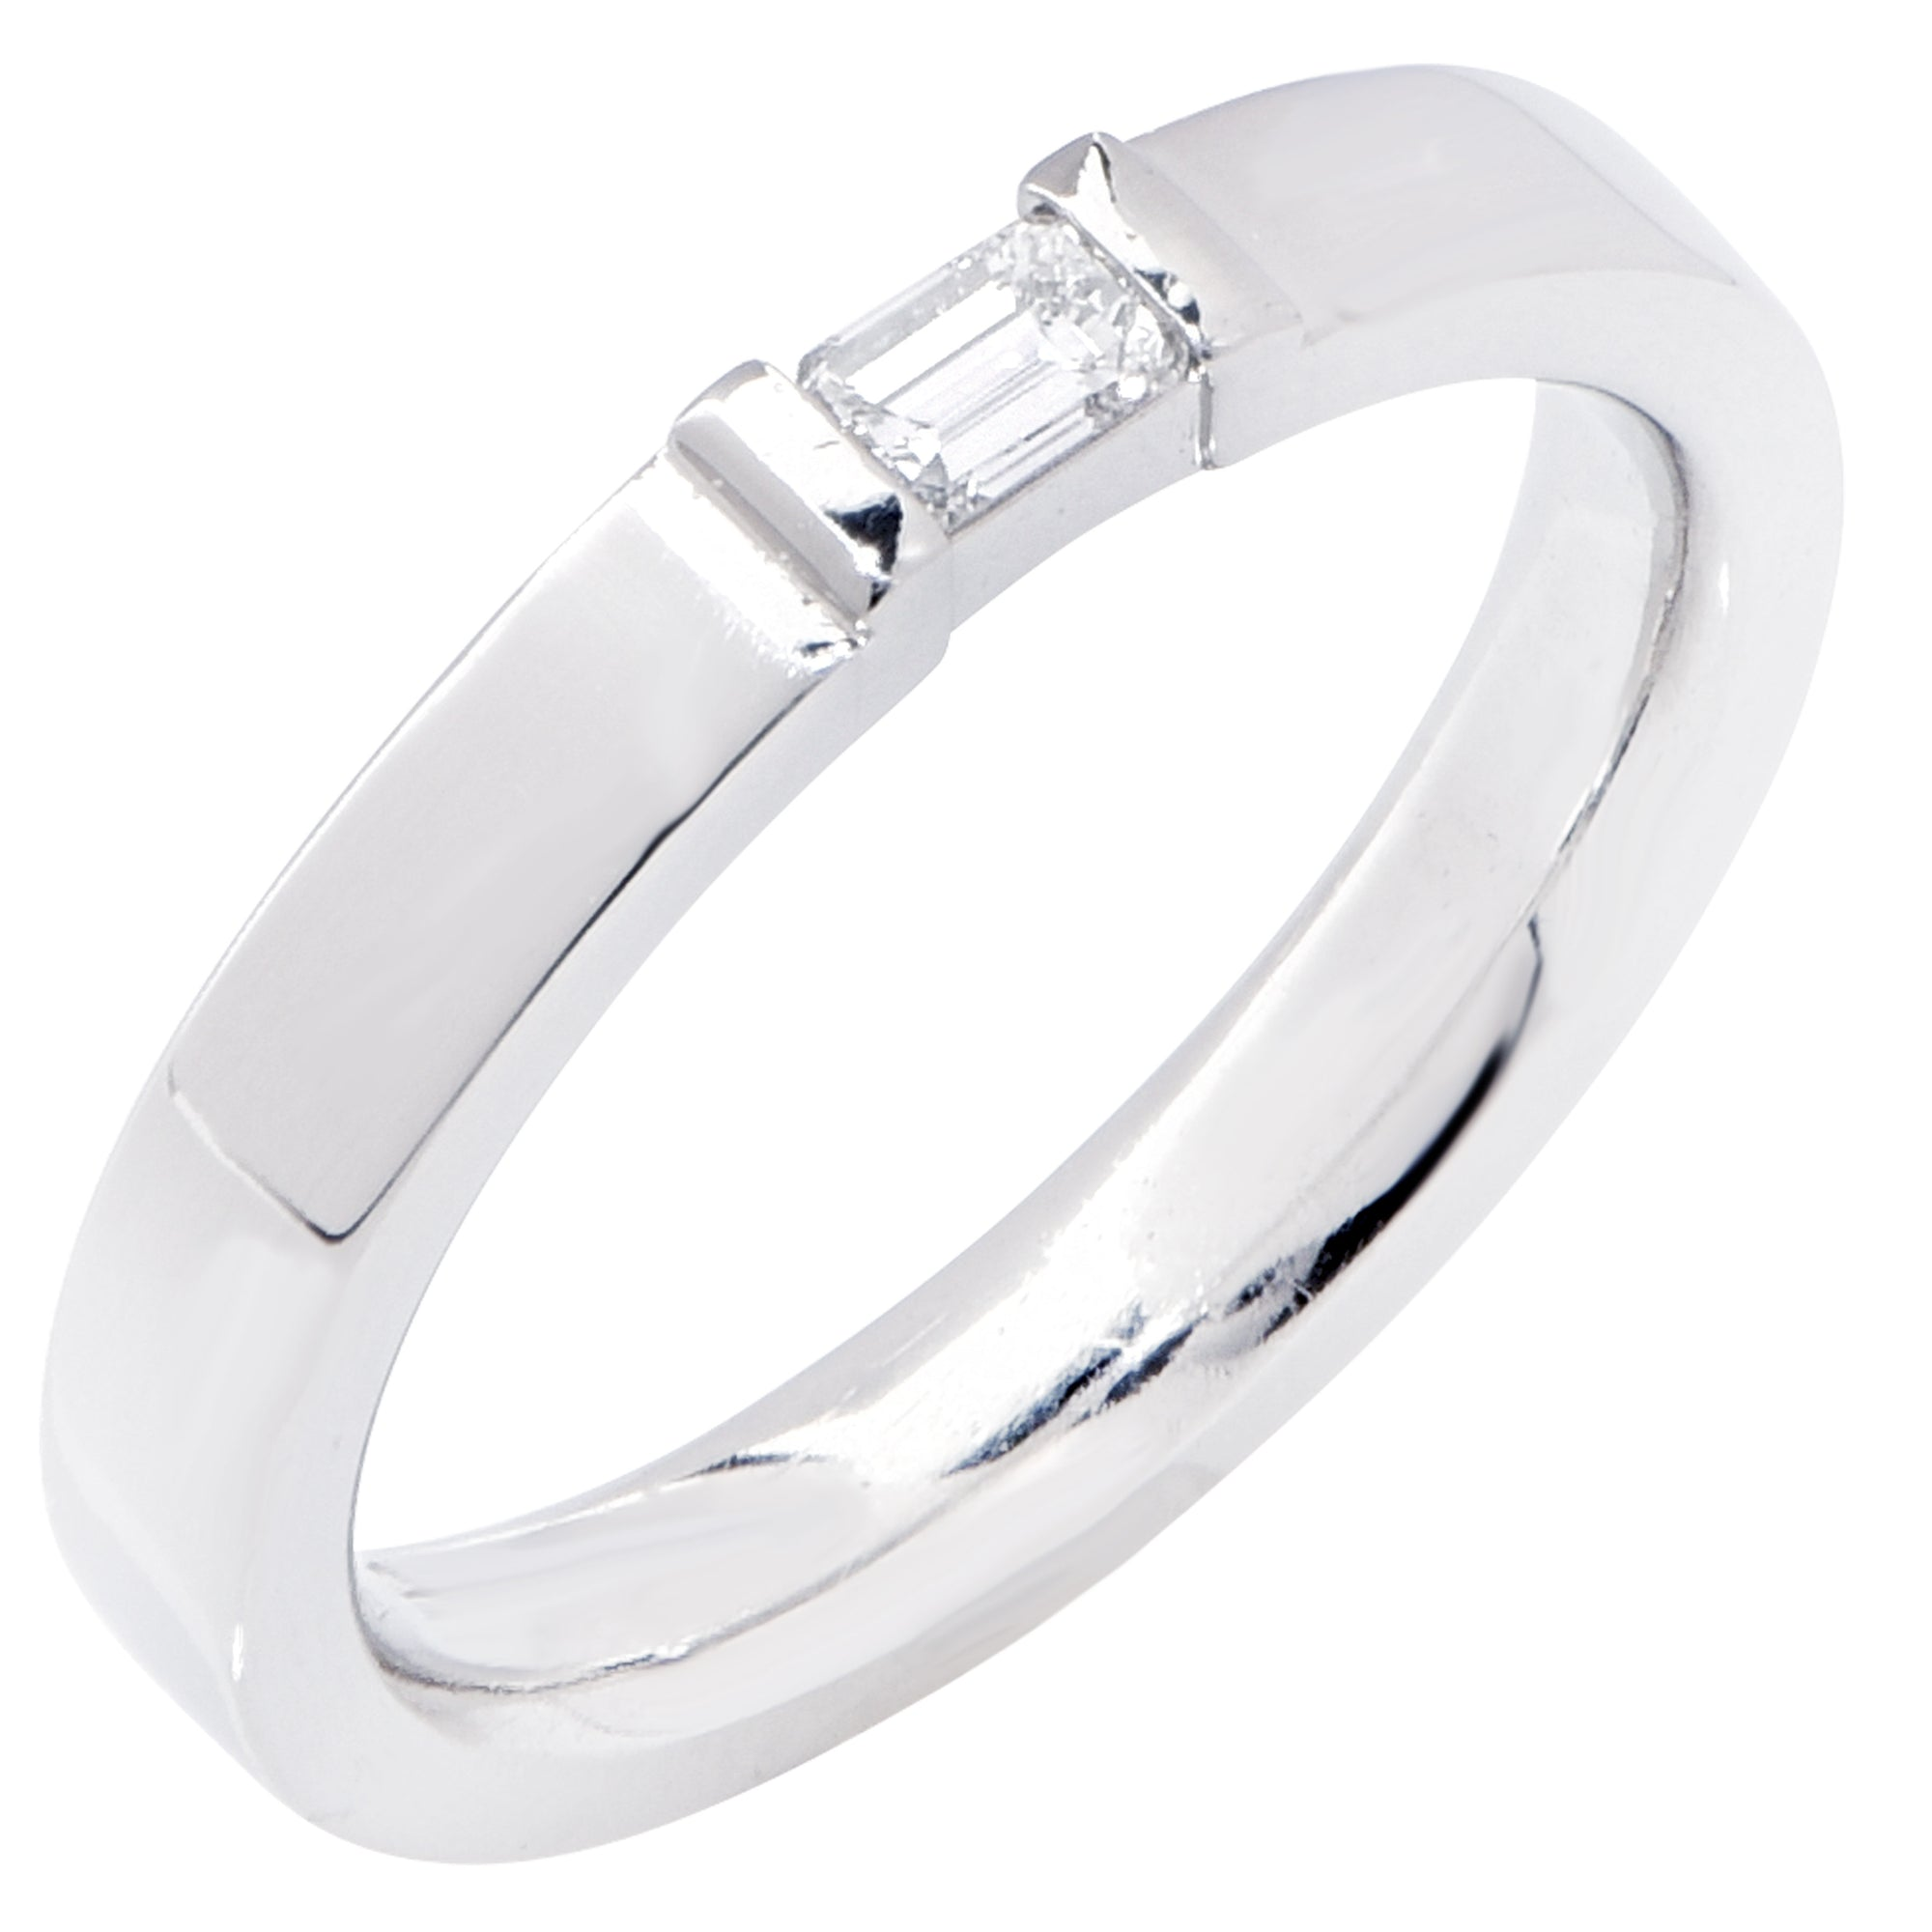 Emerald Cut Diamond Platinum Wedding Band Ring